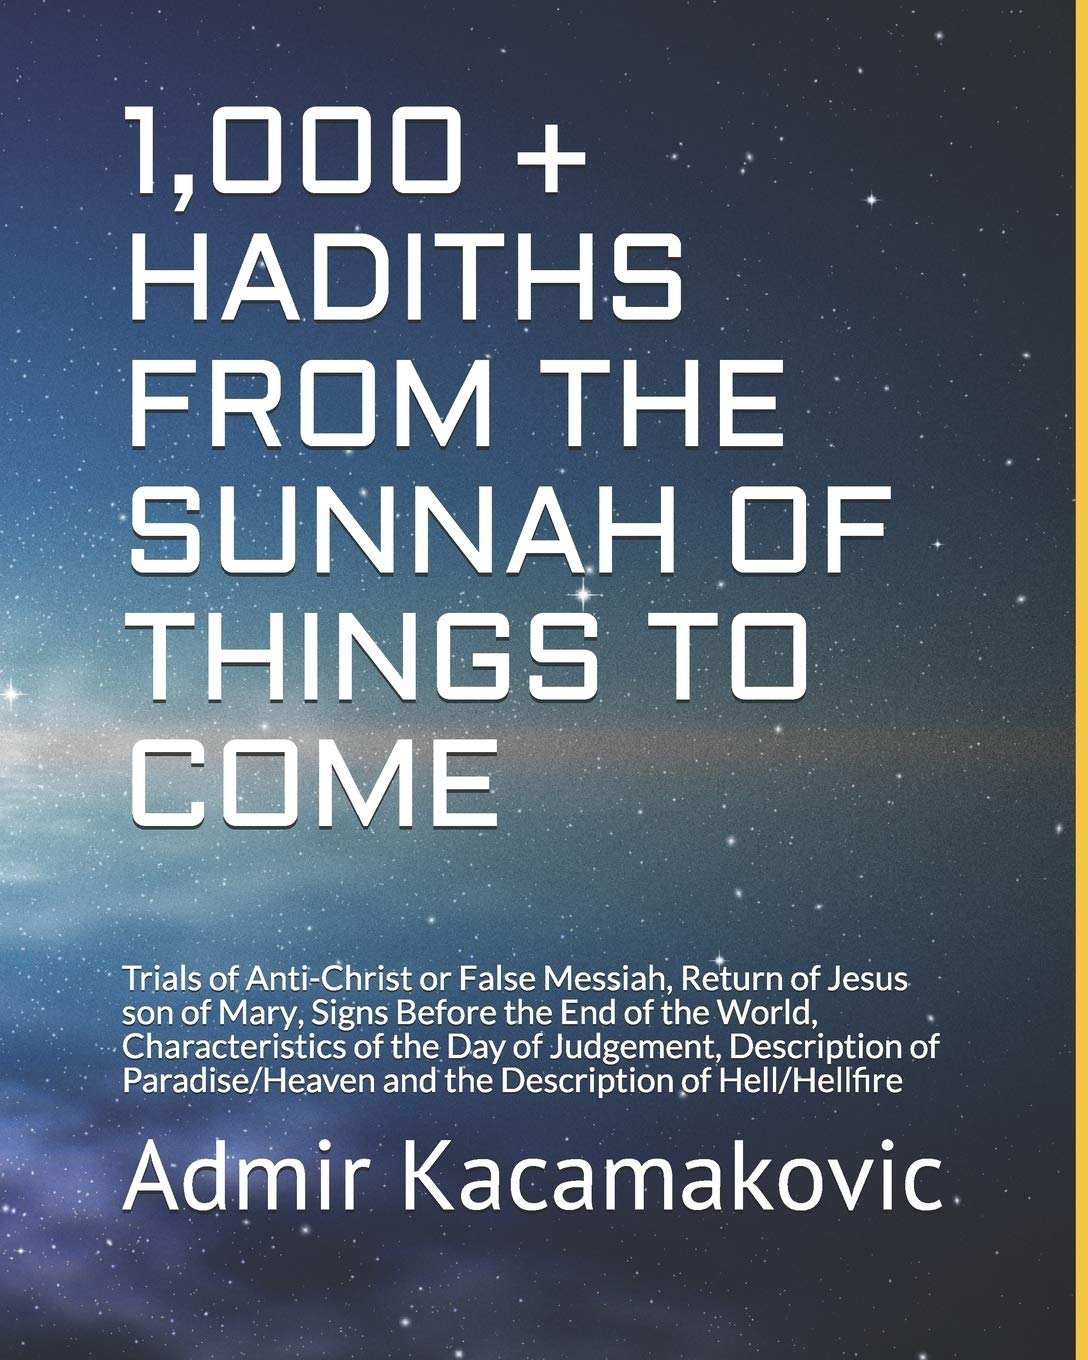 1,000 + HADITHS FROM THE SUNNAH OF THINGS TO COME: Trials of Anti-Christ or False Messiah, Return of Jesus son of Mary, Signs Before the End of the ... Paradise/Heaven Description of Hell/Hellfire